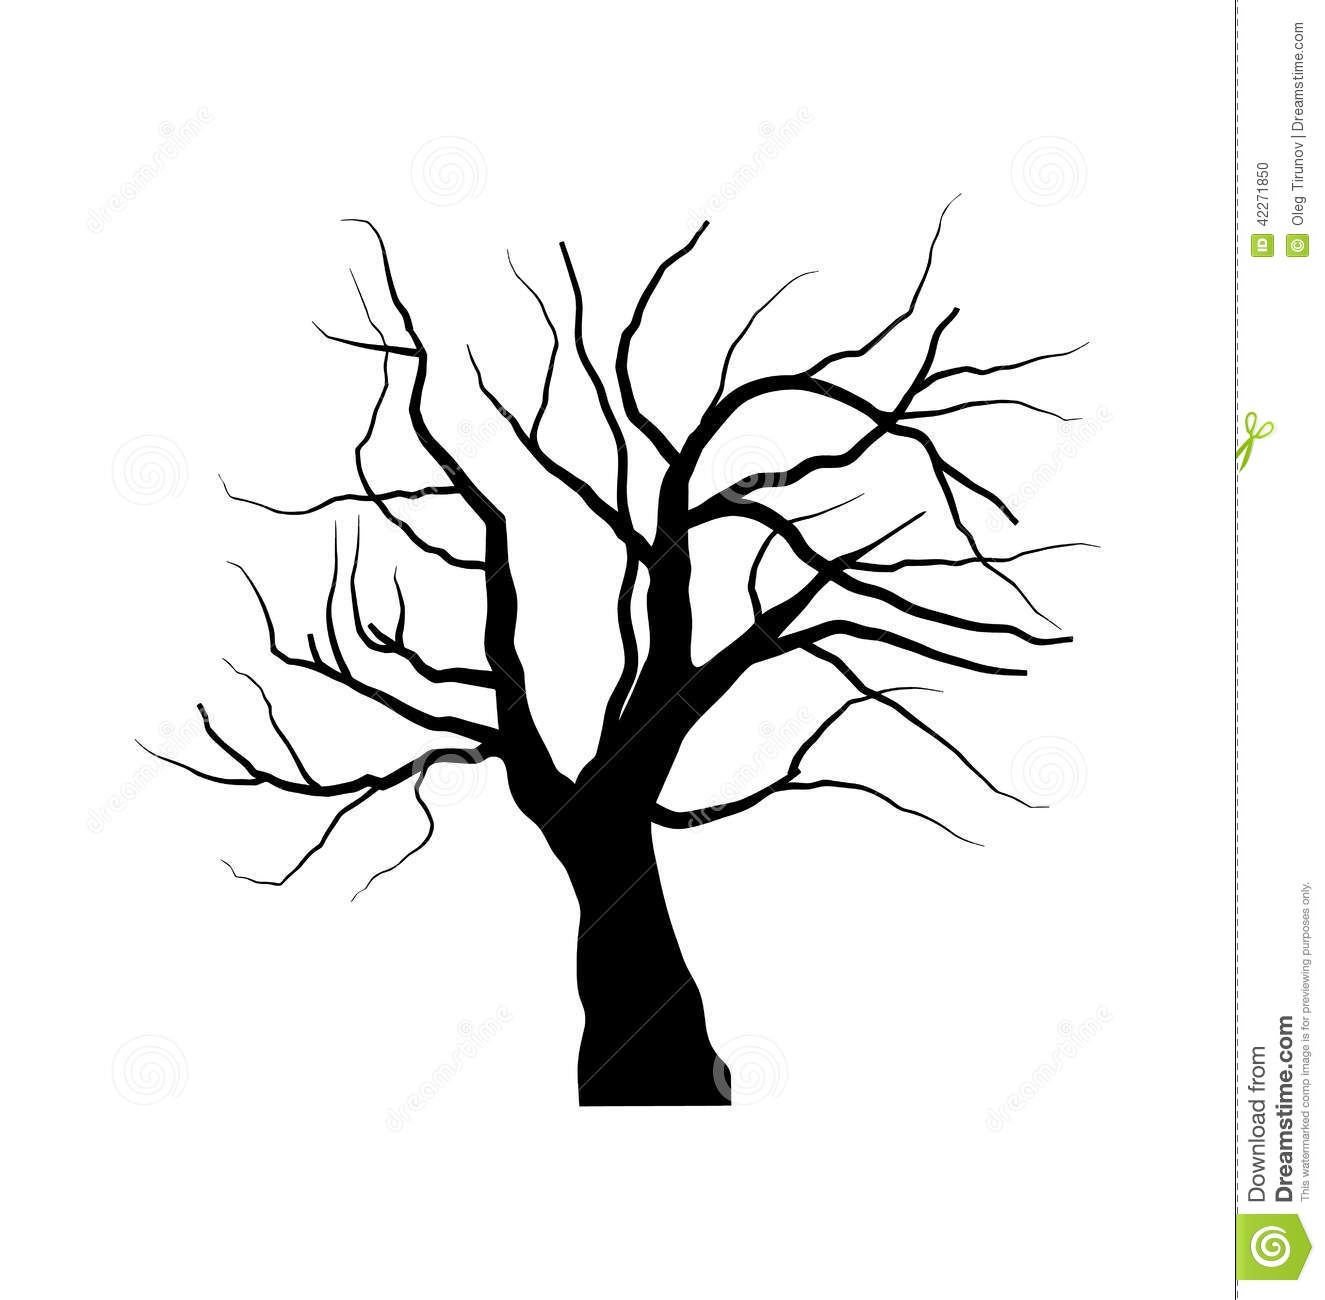 Sketch Of Dead Tree Without Leaves Isolated On White